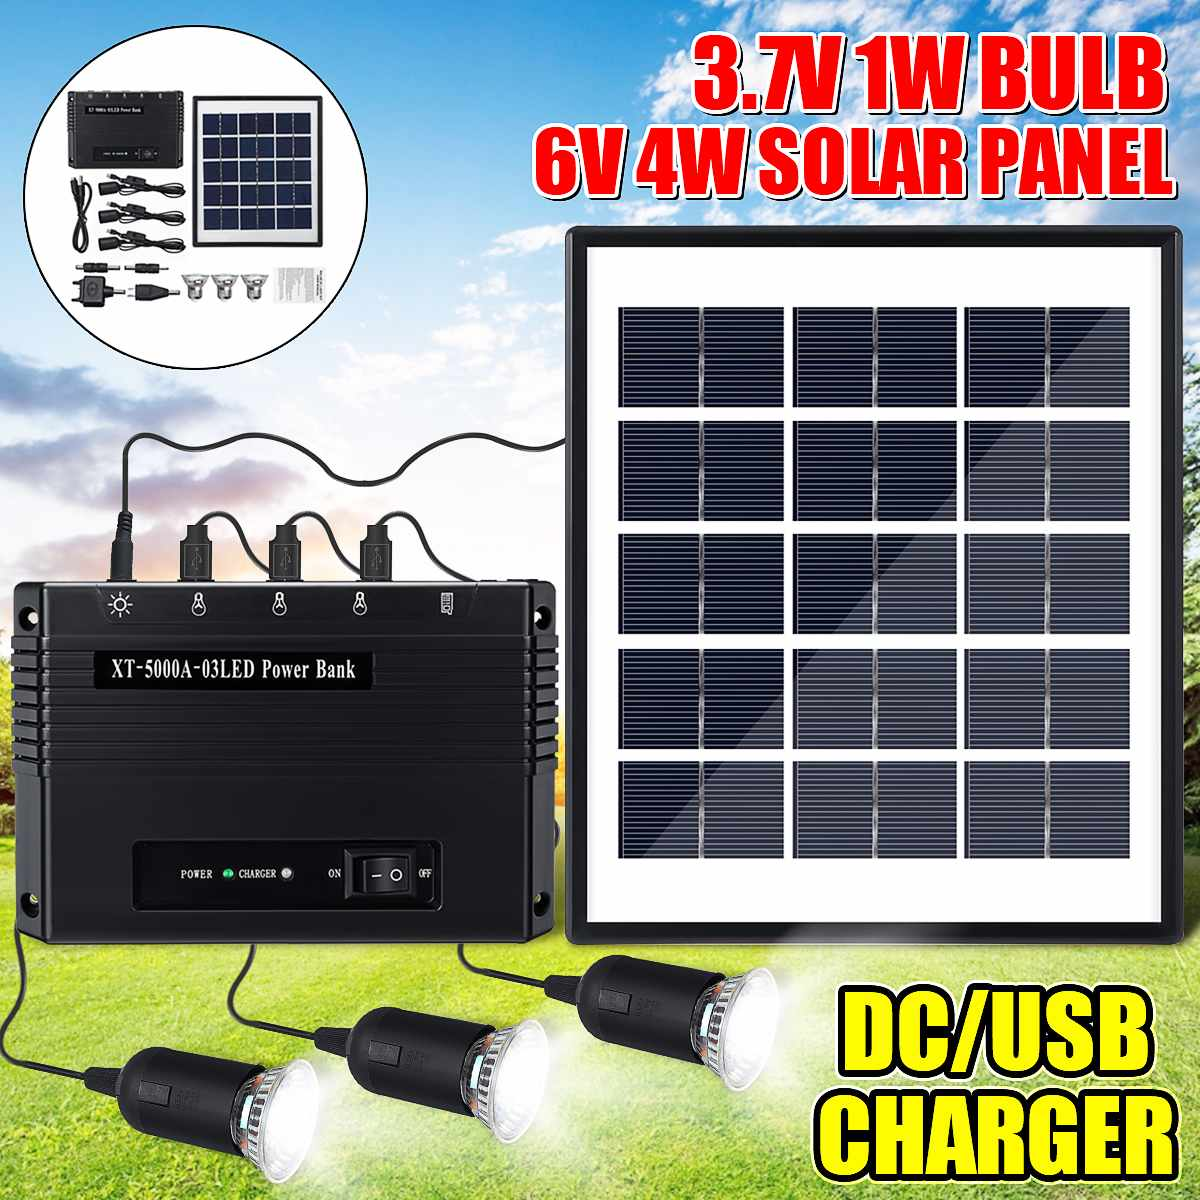 4W 6V USB Charger Home System Solar Power Panel Generator Kit with 3 LED Bulbs Light Power Bank For Indoor/Outdoor Lighting